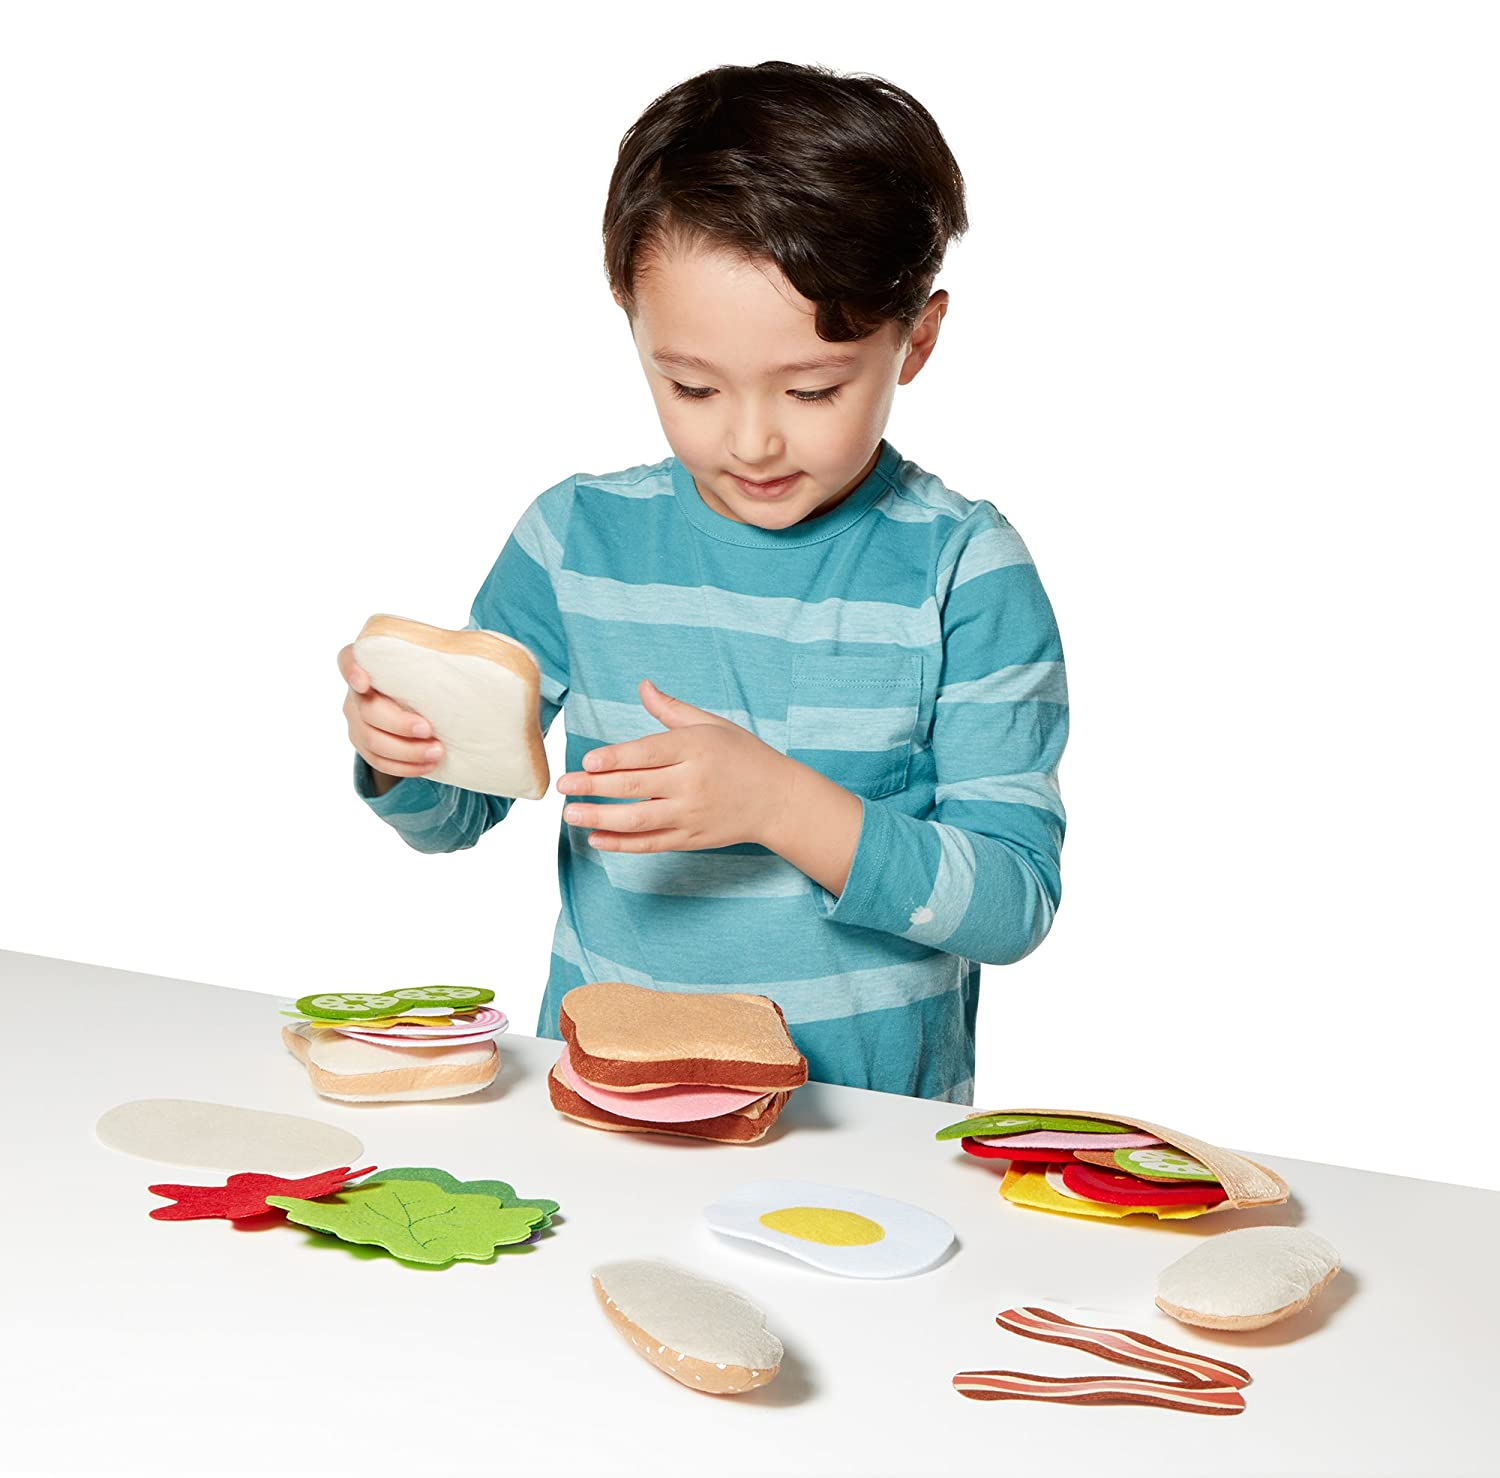 Amazon.com: Melissa & Doug Felt Food Sandwich Play Food Set (33 pcs ...